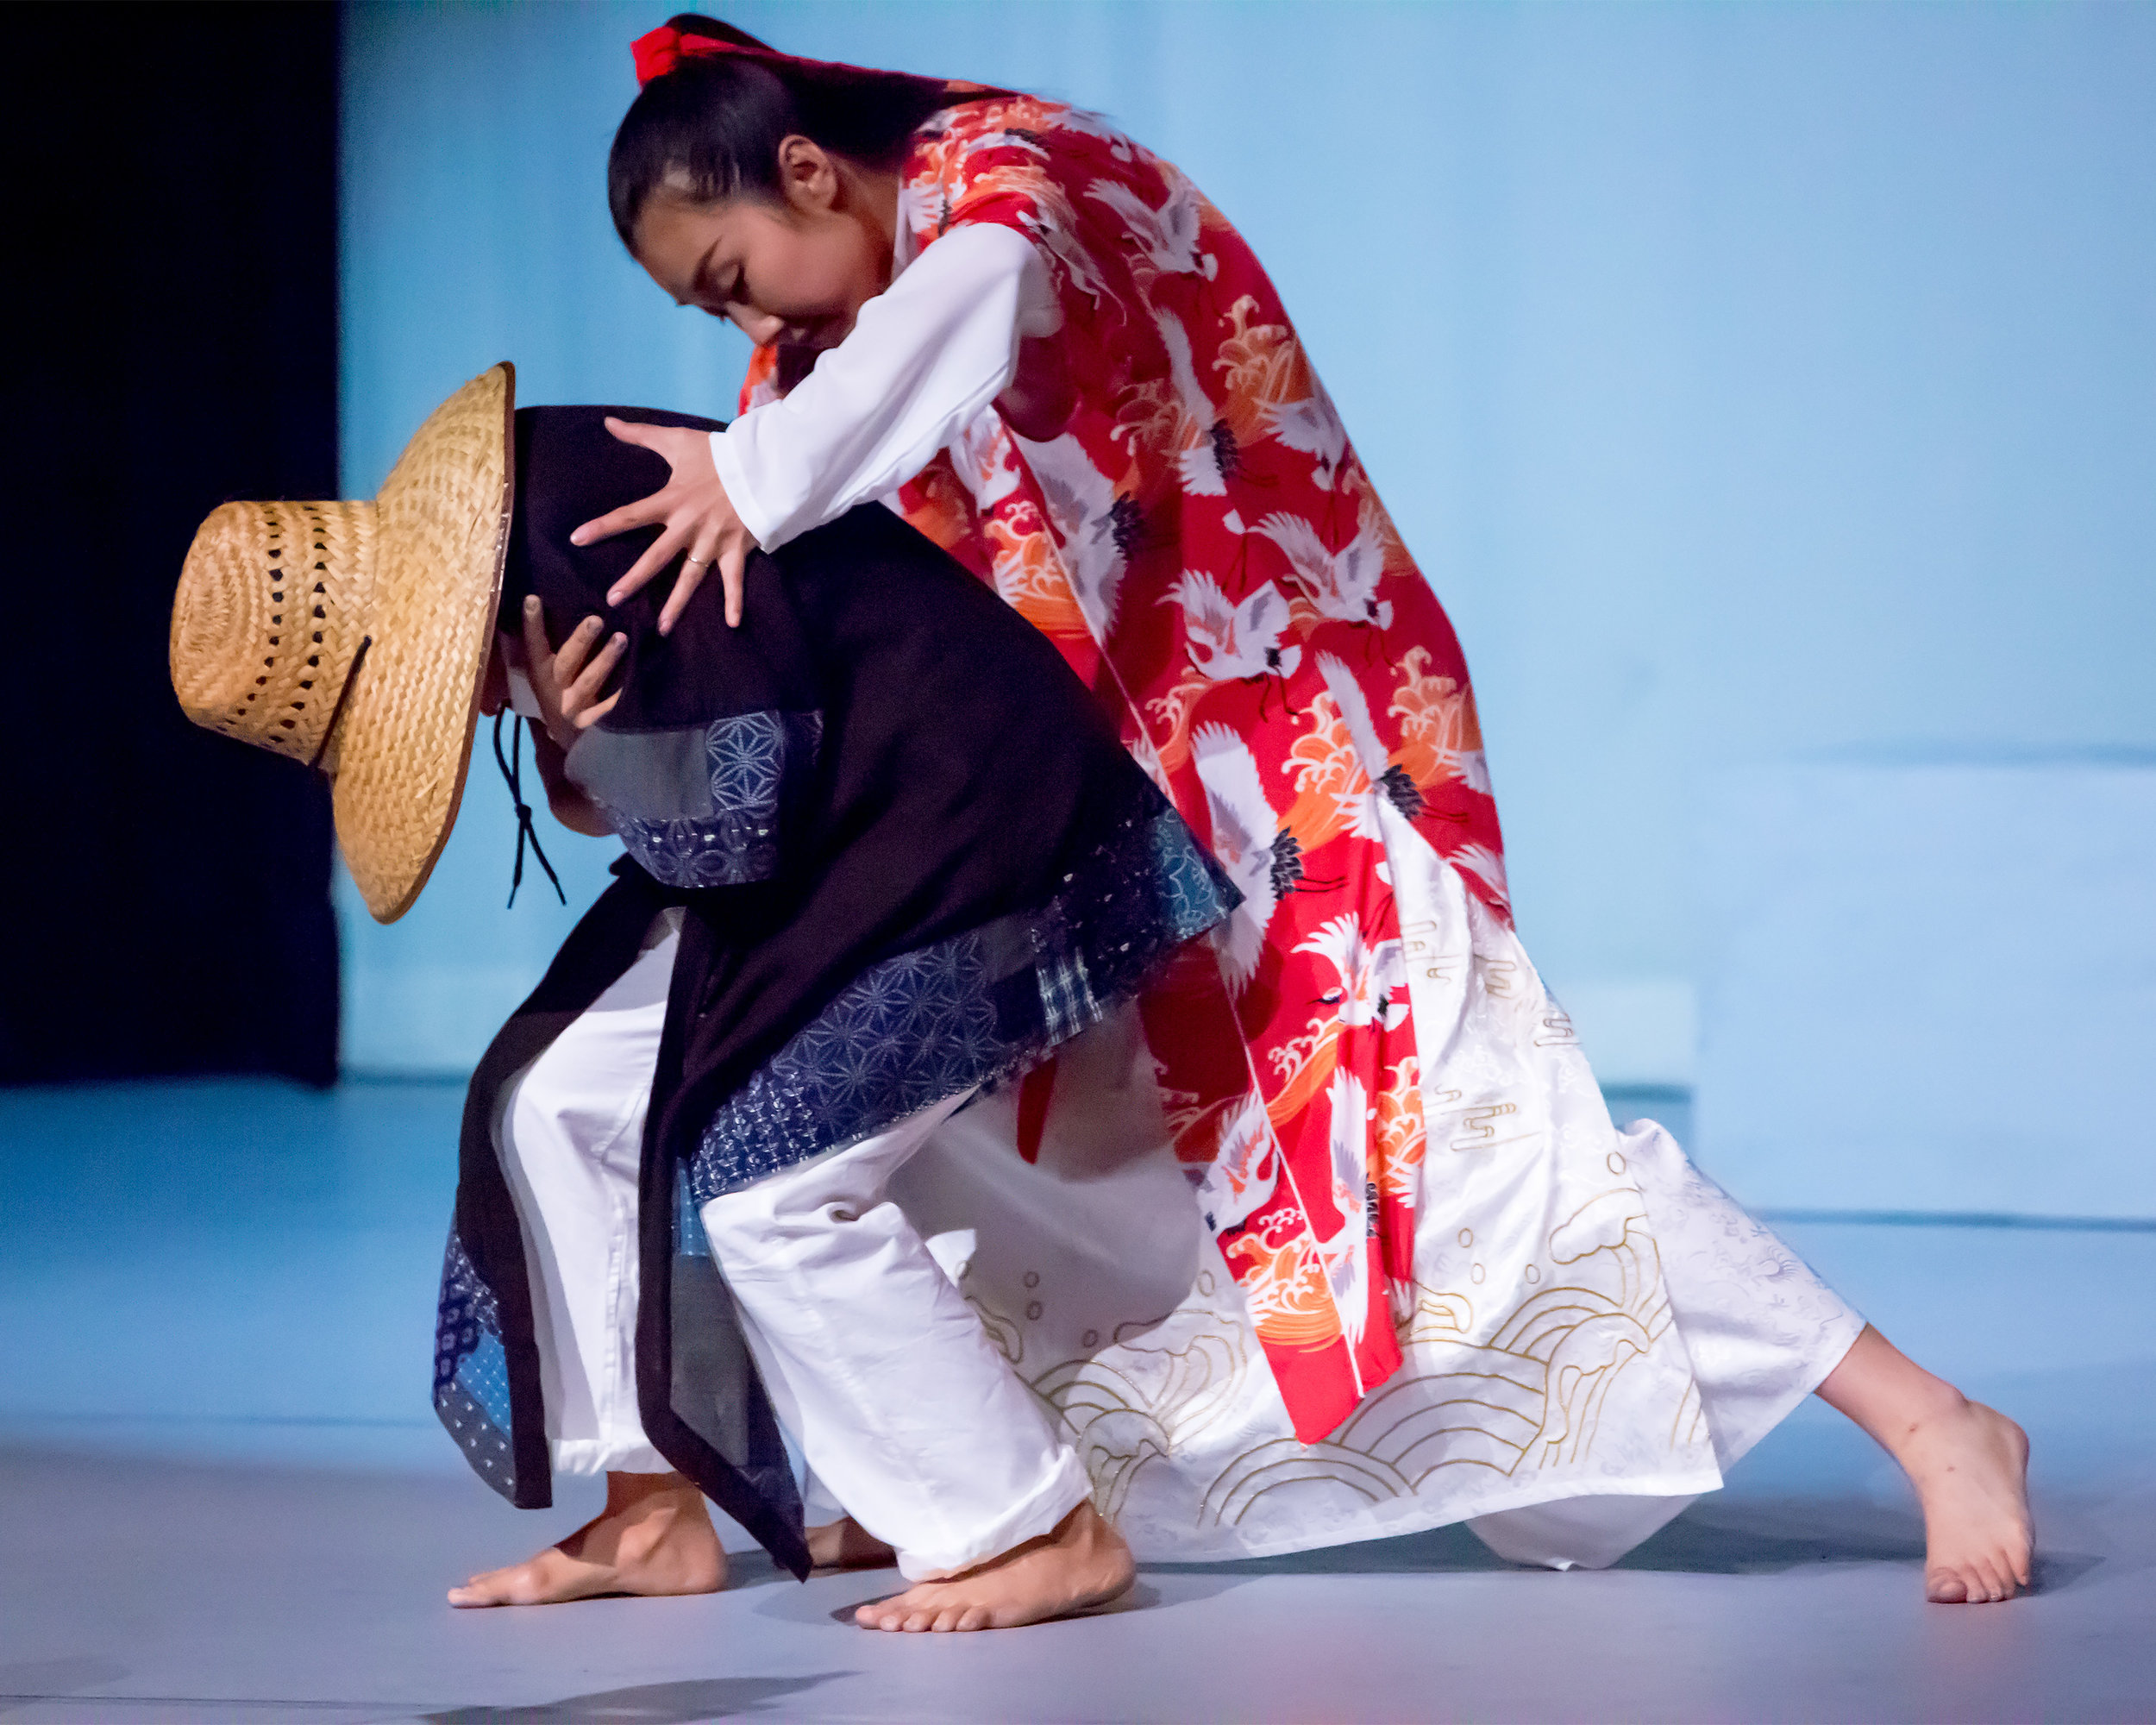 The Lord of the Cranes (choreographed and danced by Jingqiu Guan) takes pity on a shivering pauper (Kristianne Salcines)